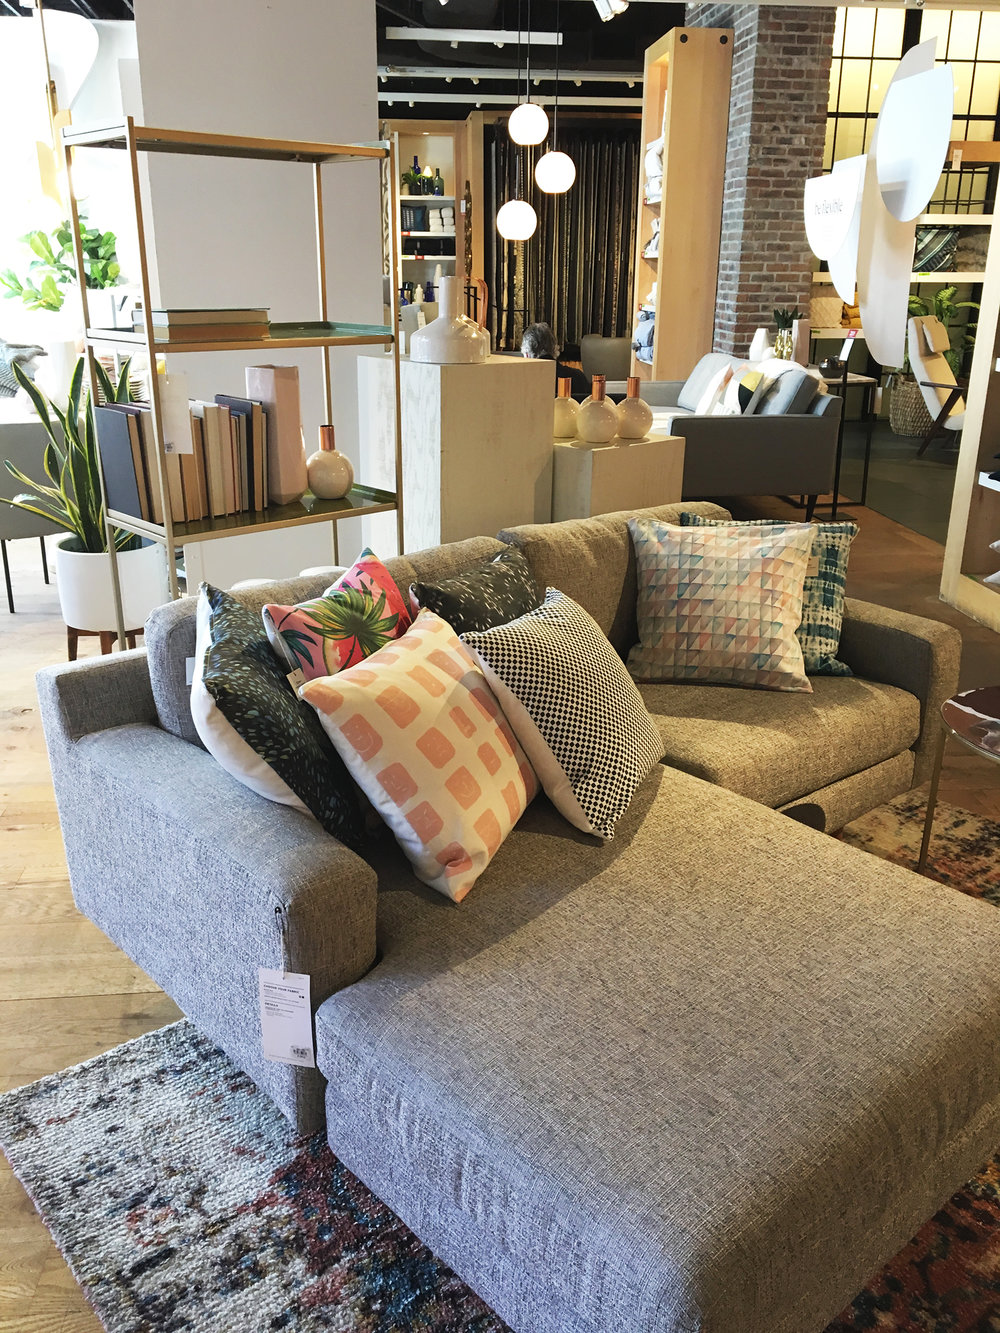 West Elm x Bowkey Works Pop-Up Shop in Santa Monica, CA!